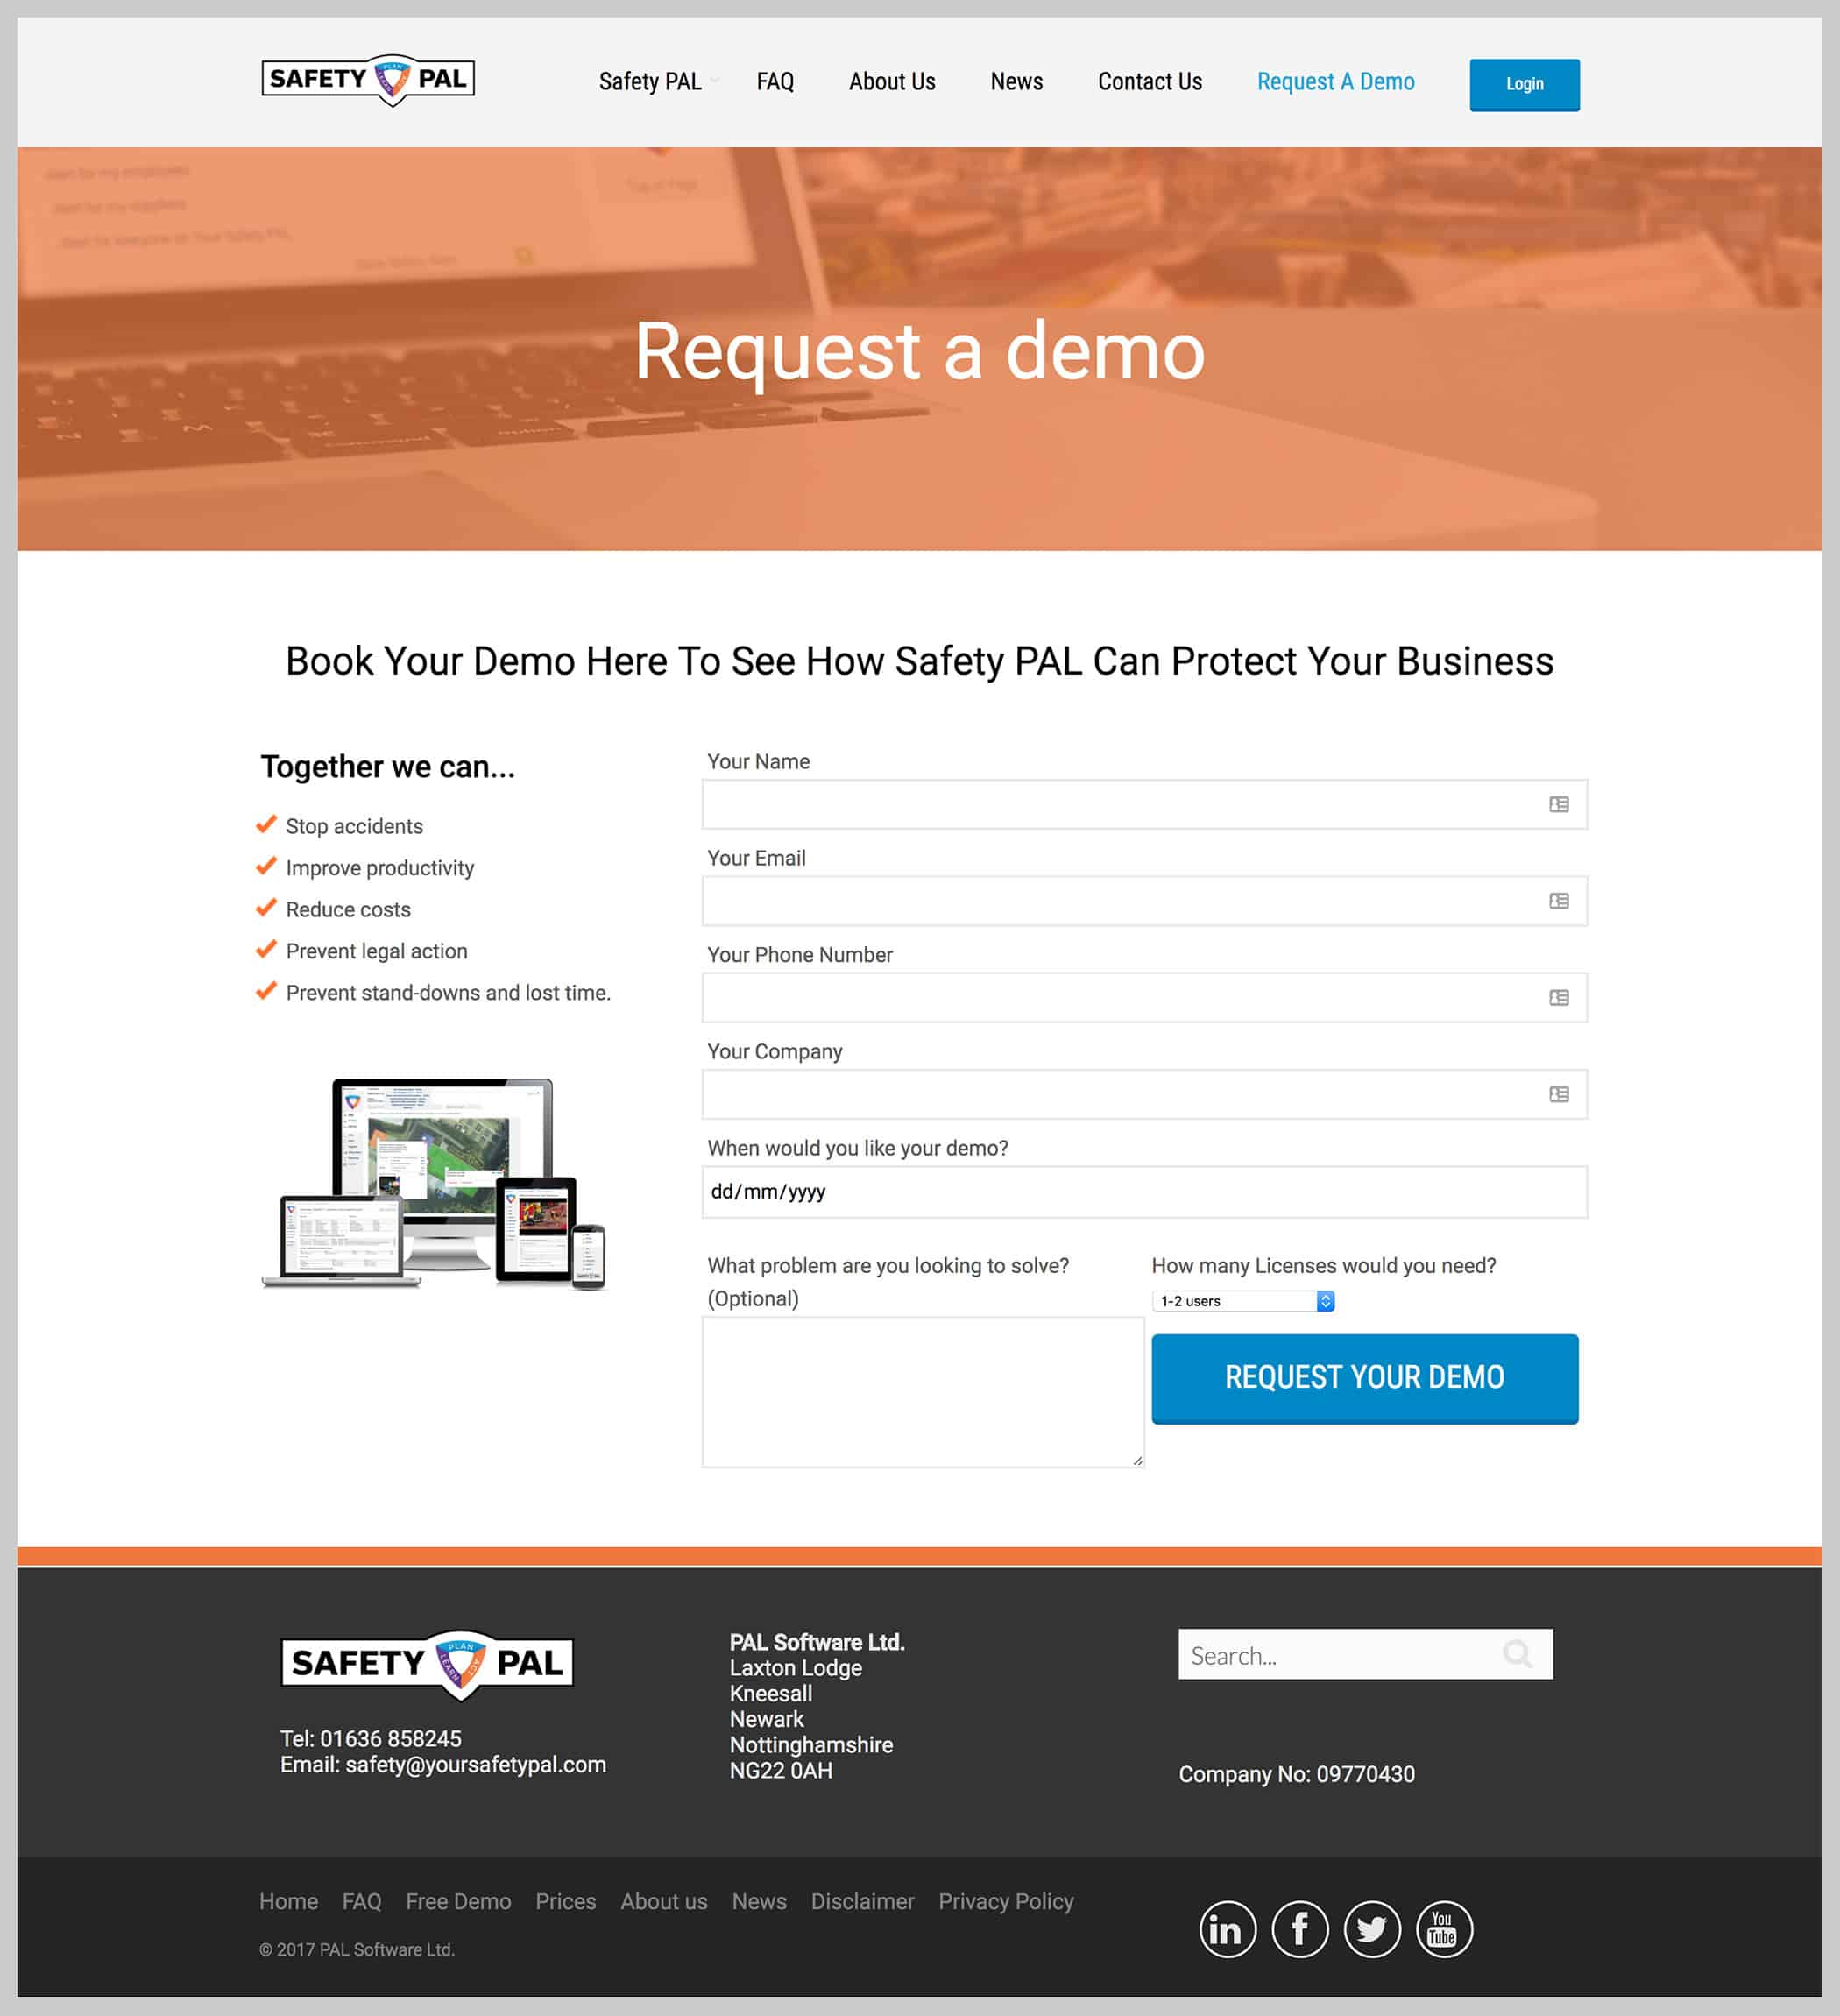 Safety PAL request a demo website page design